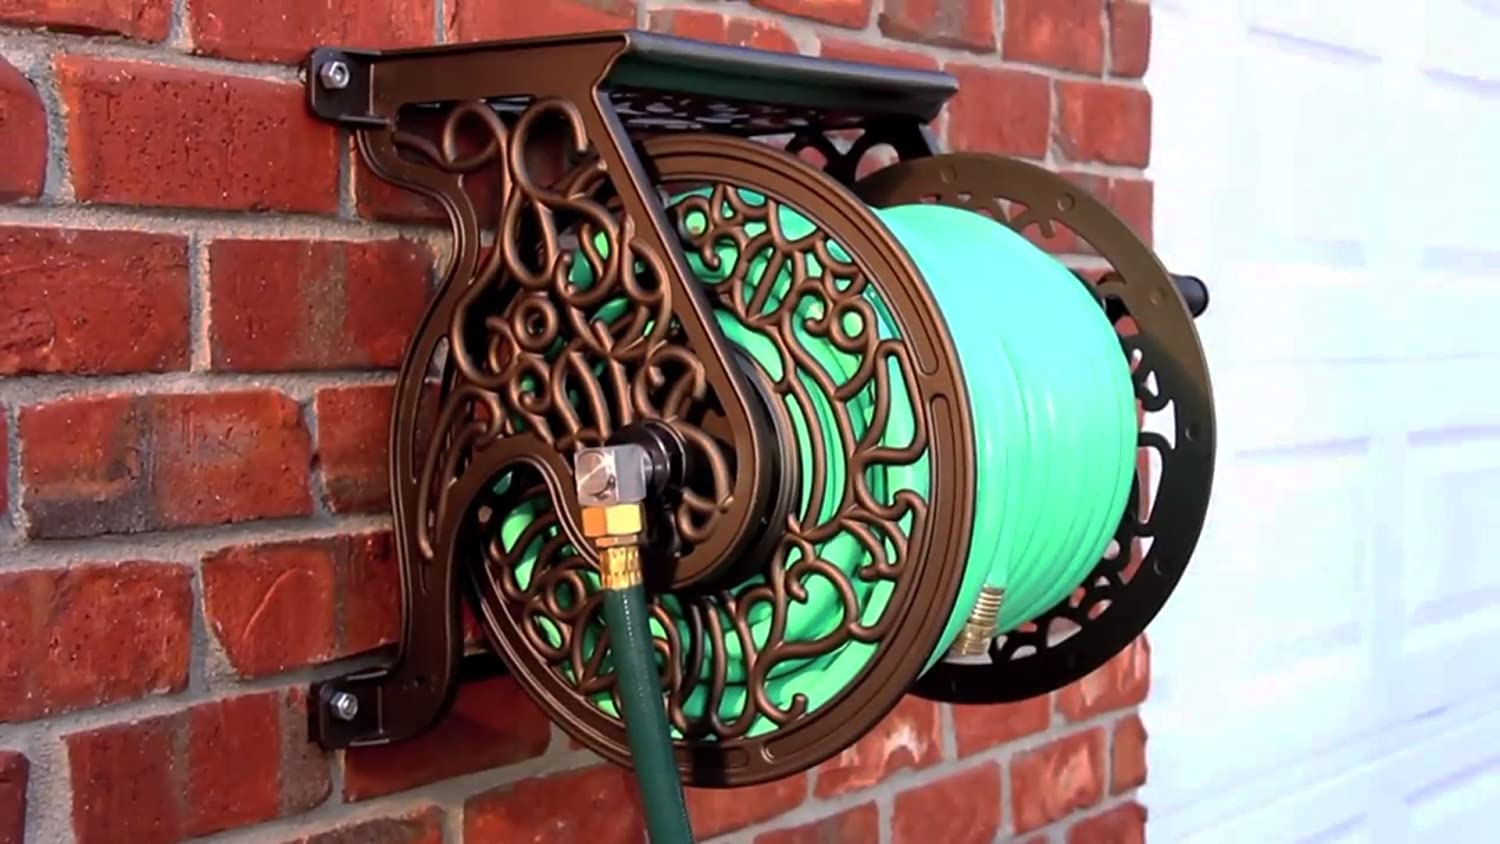 Amazon.com : Liberty Garden Products 704 Decorative Cast Aluminum Wall  Mount Garden Hose Reel, Holds 125 Feet Of 5/8 Inch Hose   Bronze : Patio,  ...